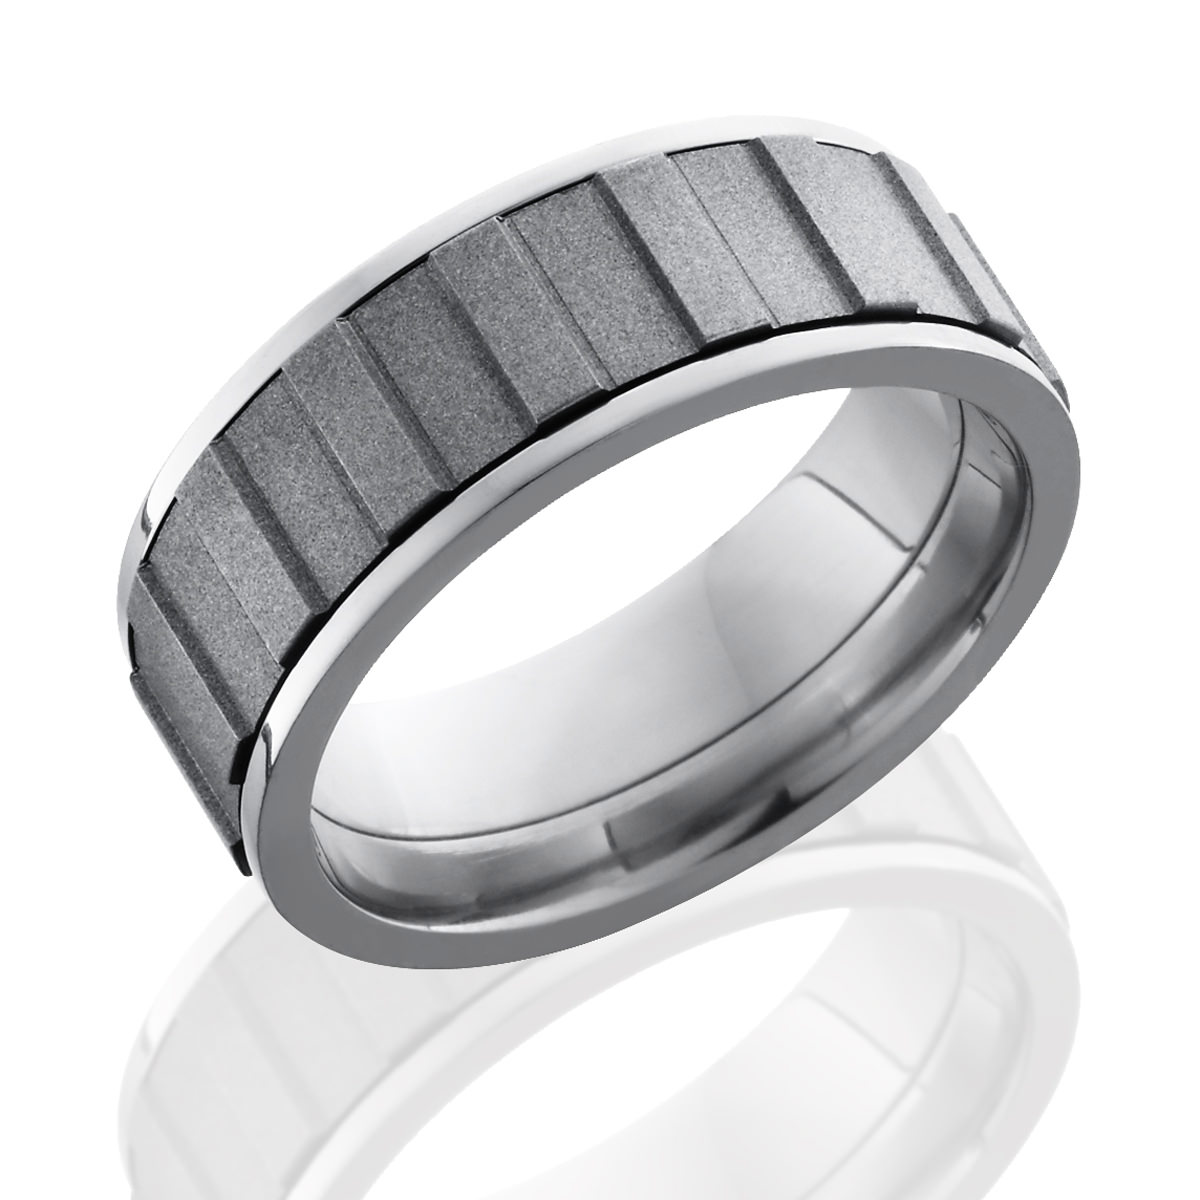 Gear Spinner Titanium Ring Lashbrook Titanium Ring